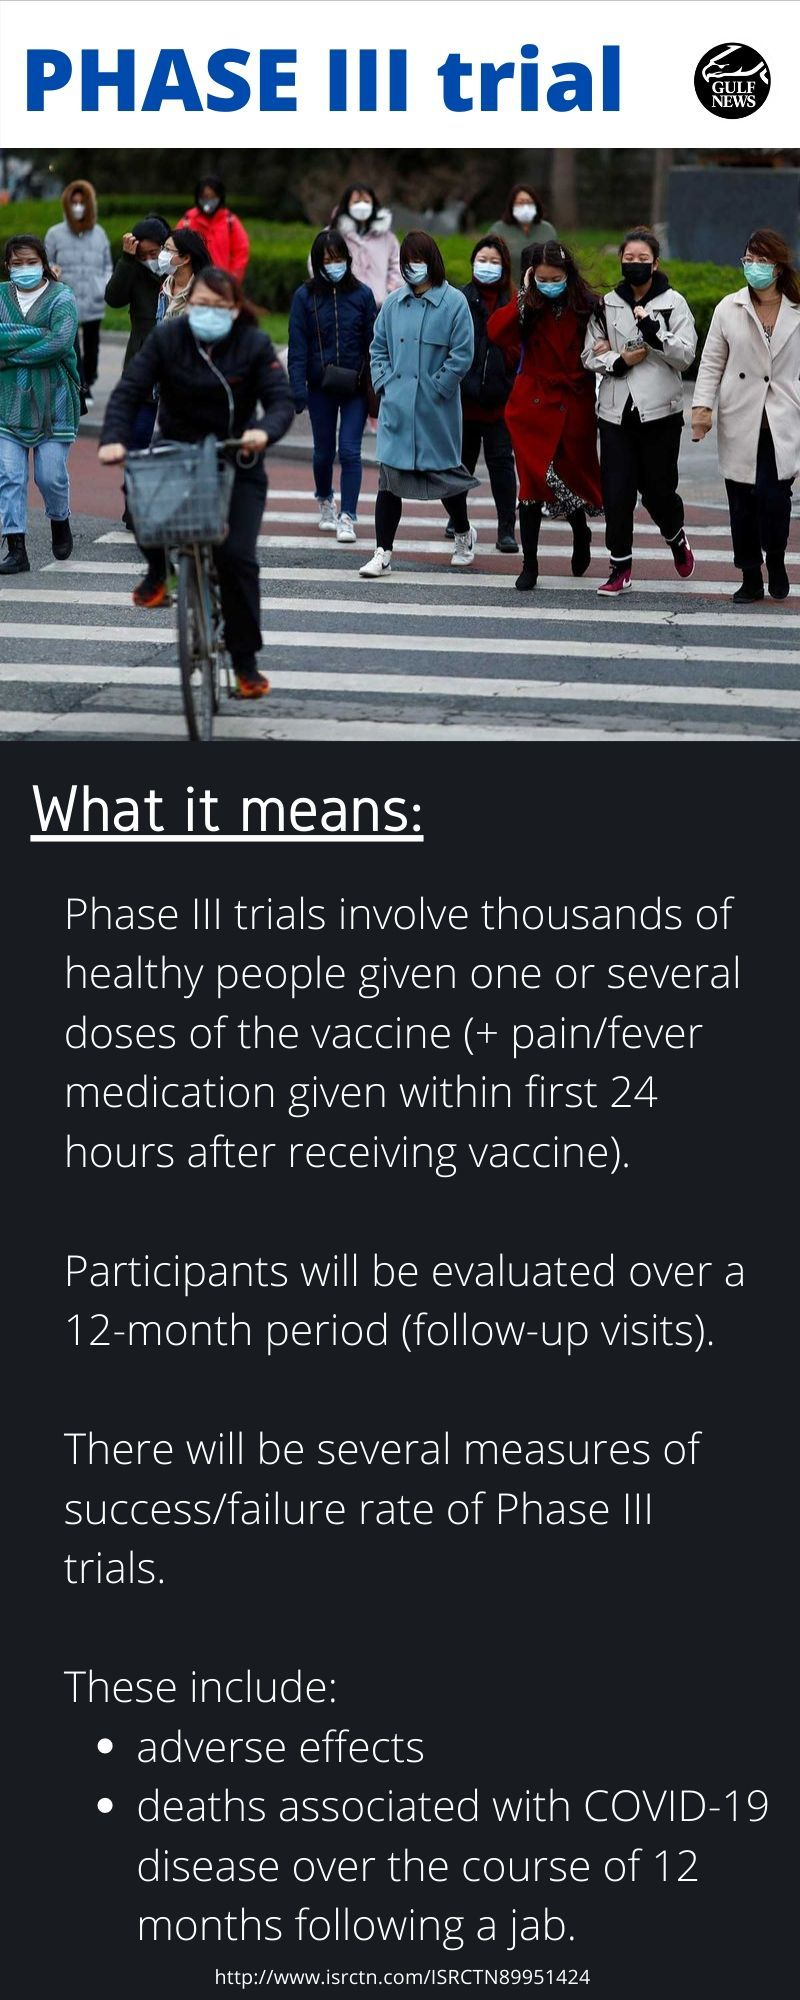 Phase III trial 001